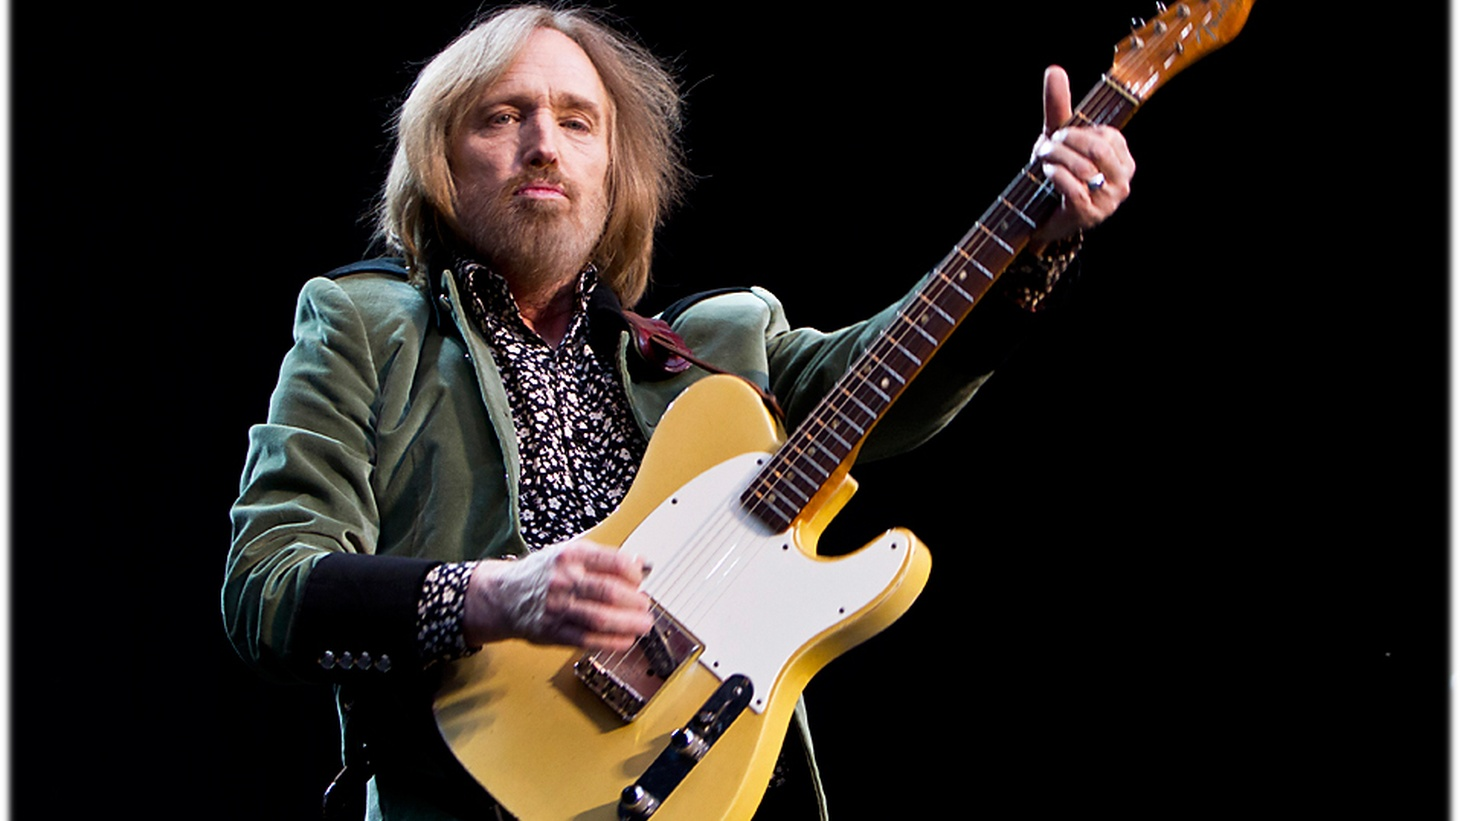 Tom Petty will now get writing credit for a hit song by musician Sam Smith. The two musicians settled out of court after Petty accused Smith of ripping-off a chorus. We take a look at the history of musical legal battles.